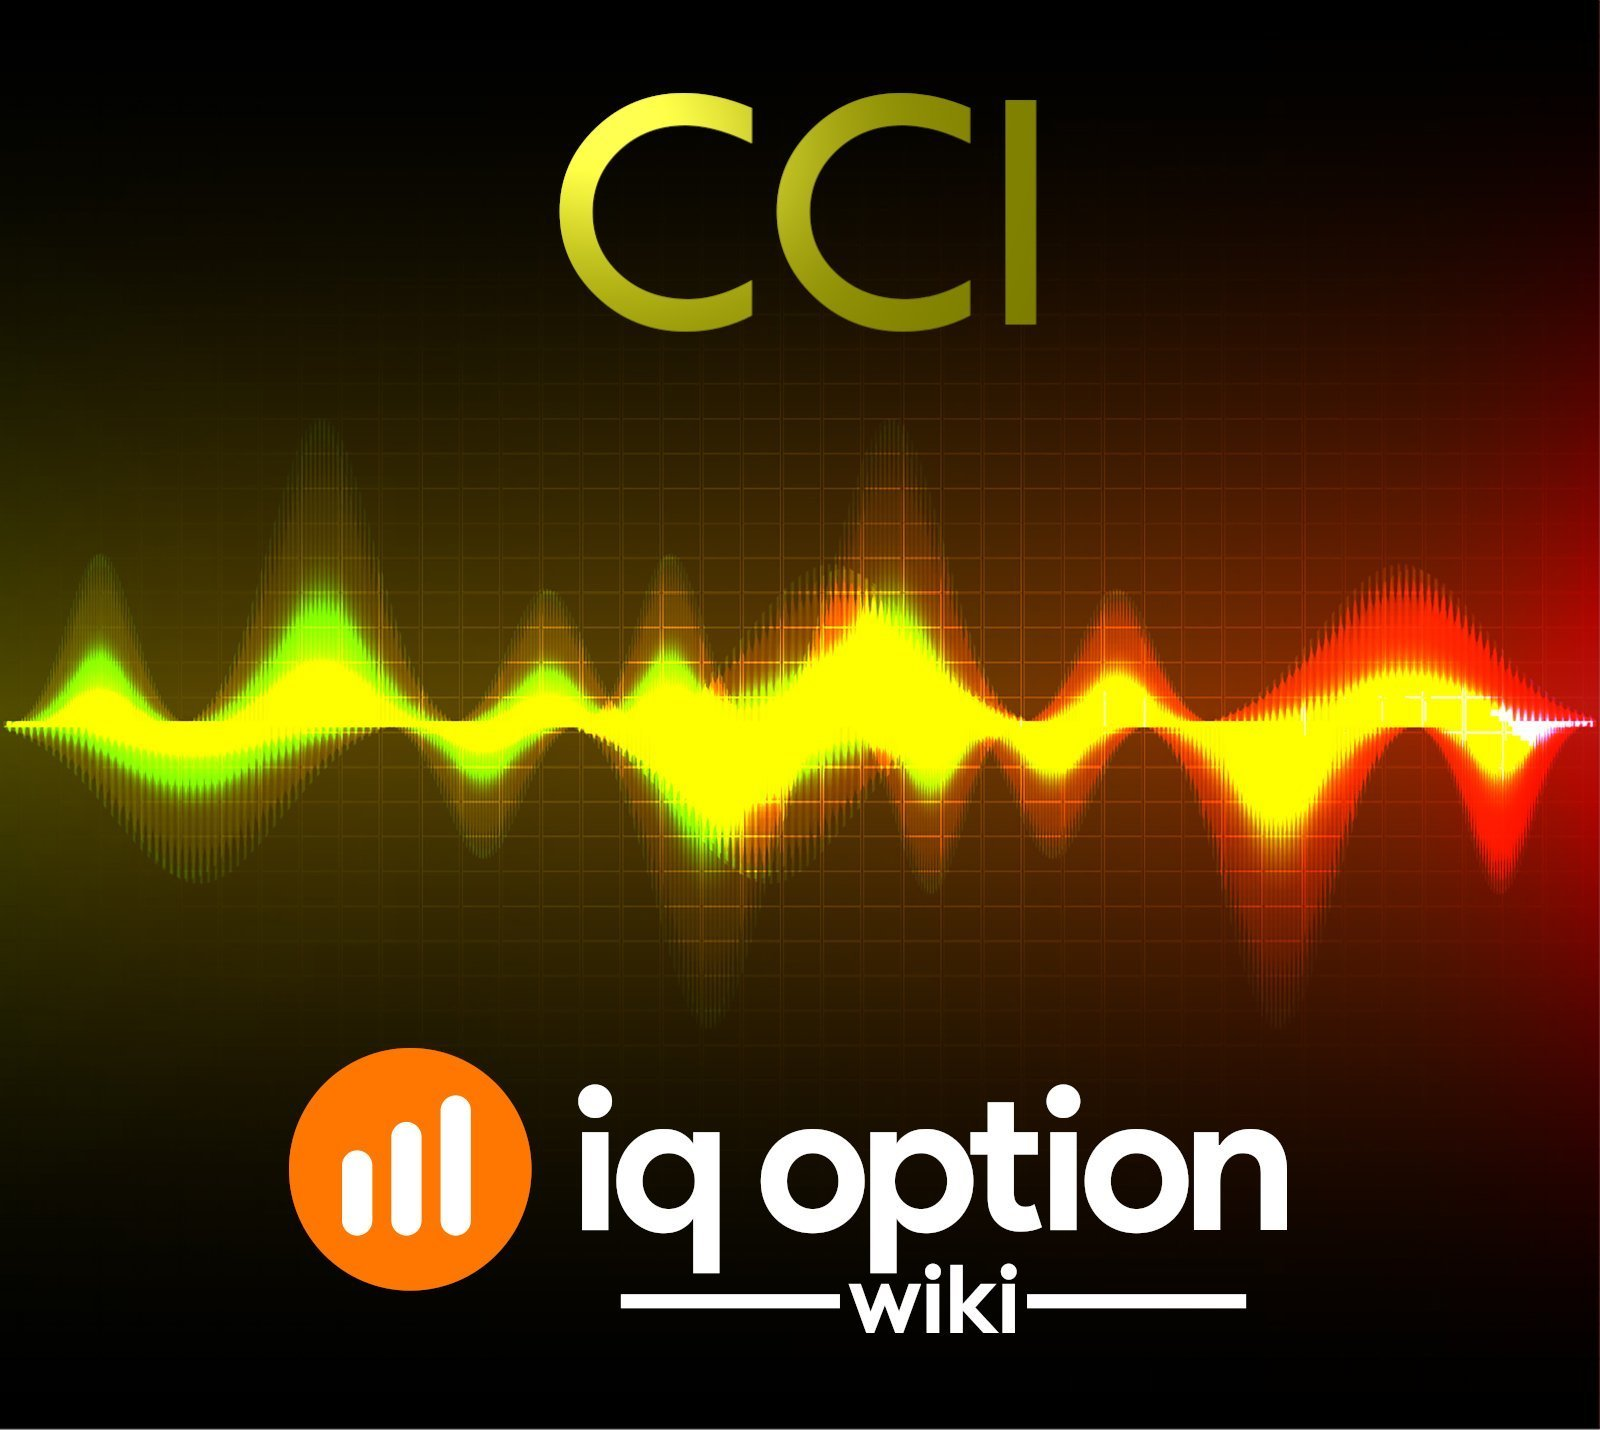 CCI at iq option